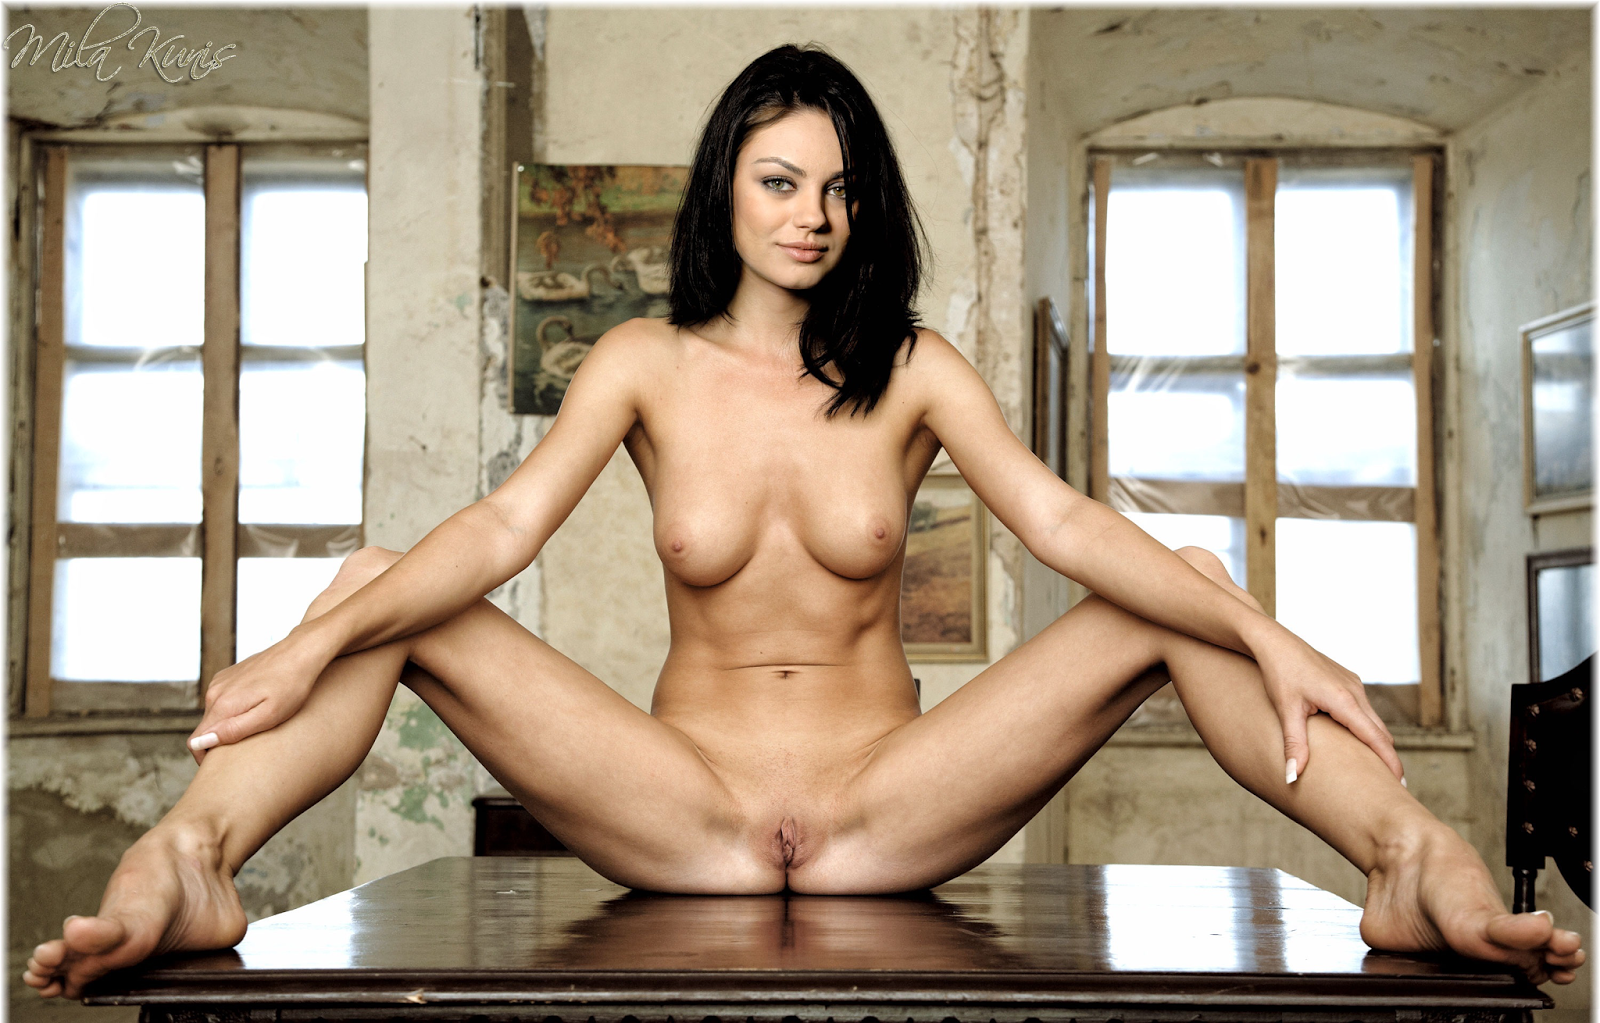 have aria giovanni strip video agree, this remarkable